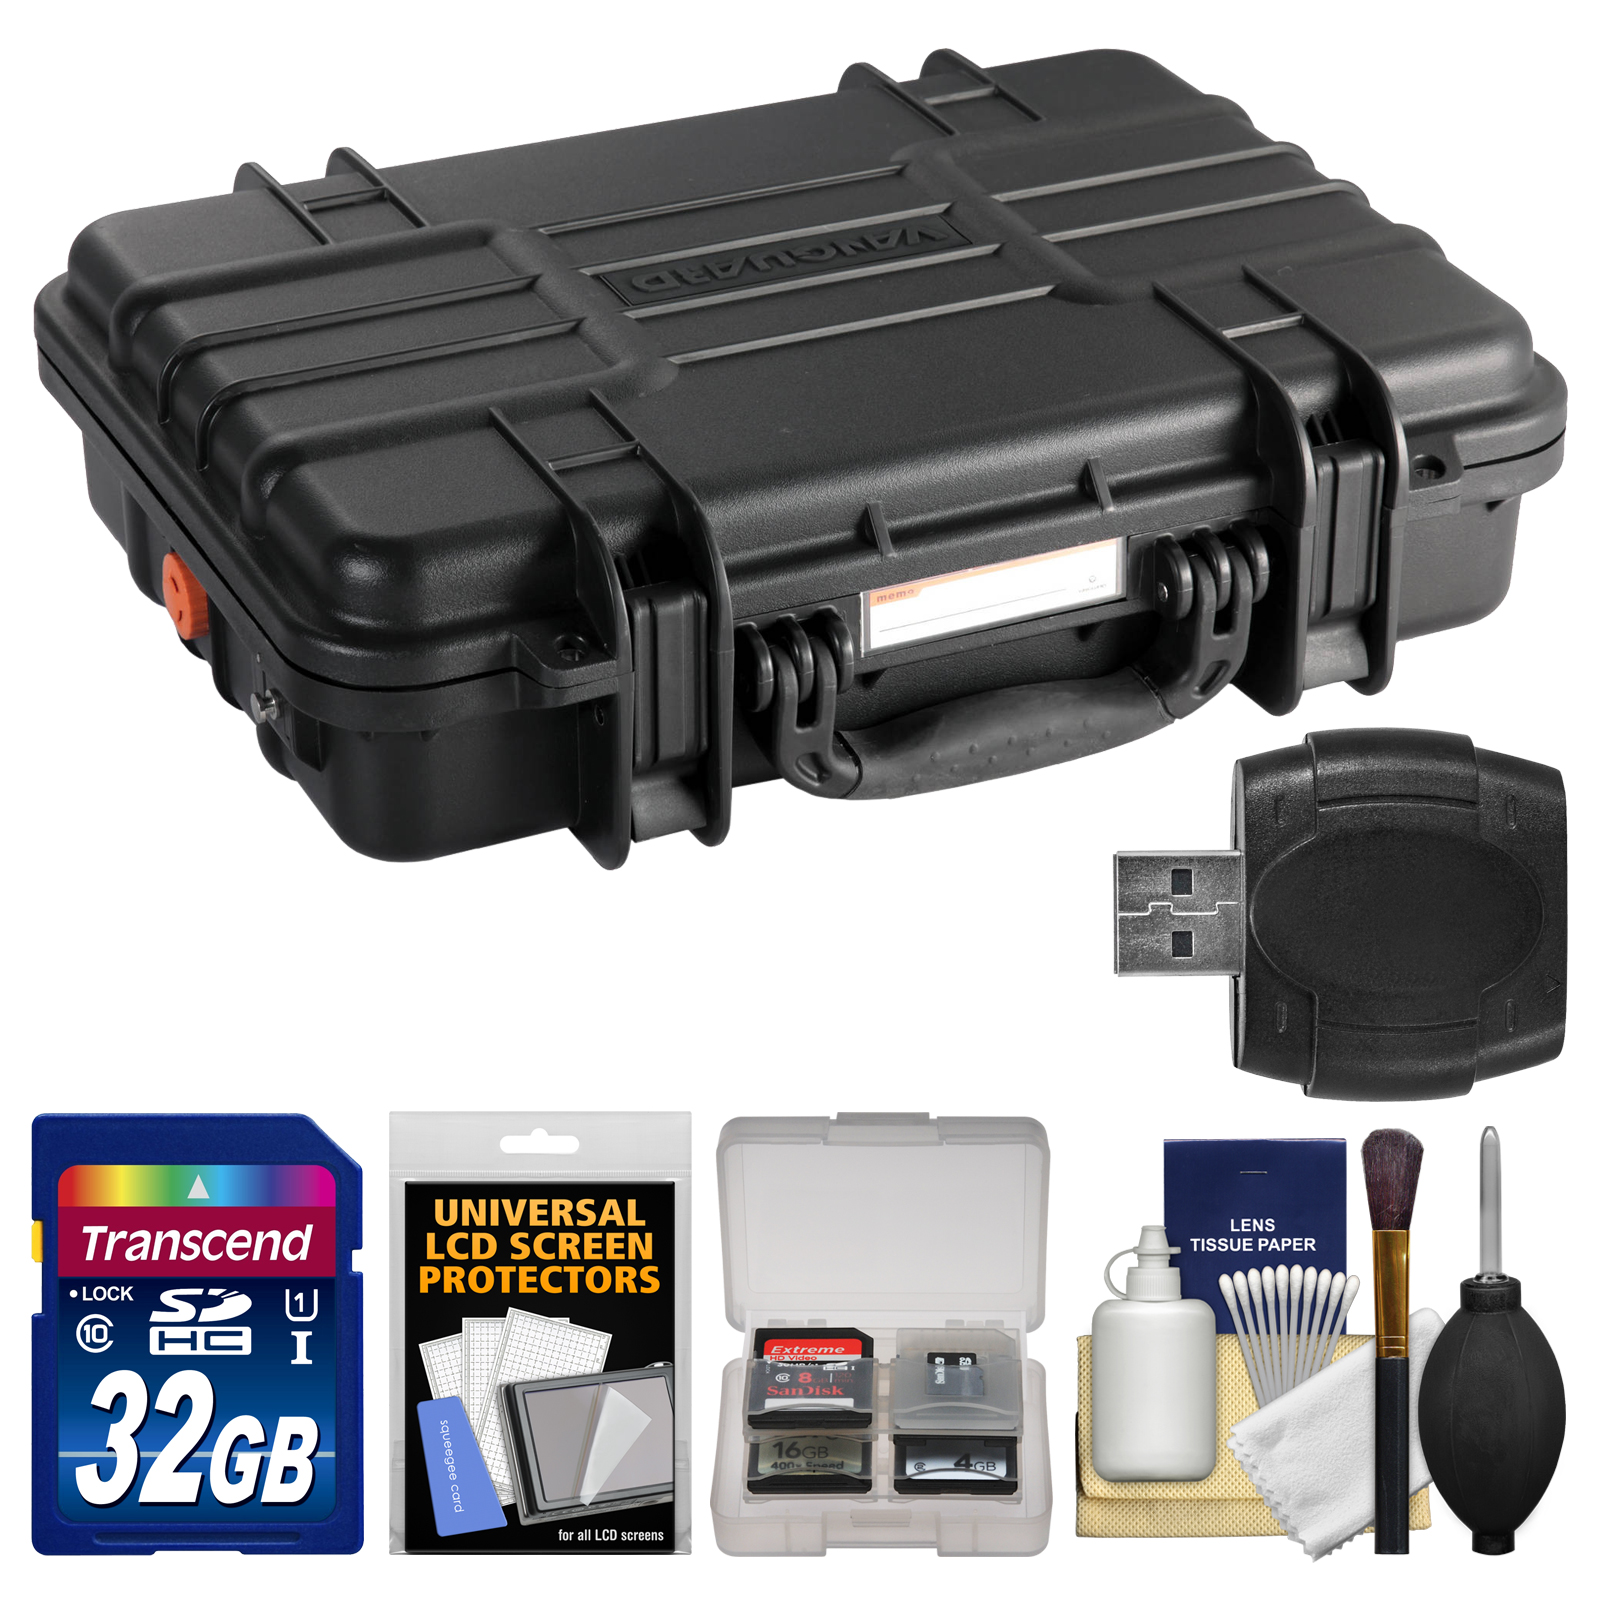 Vanguard Supreme 38F Waterproof and Airtight Hard Case with Foam with 32GB Card + Accessory Kit